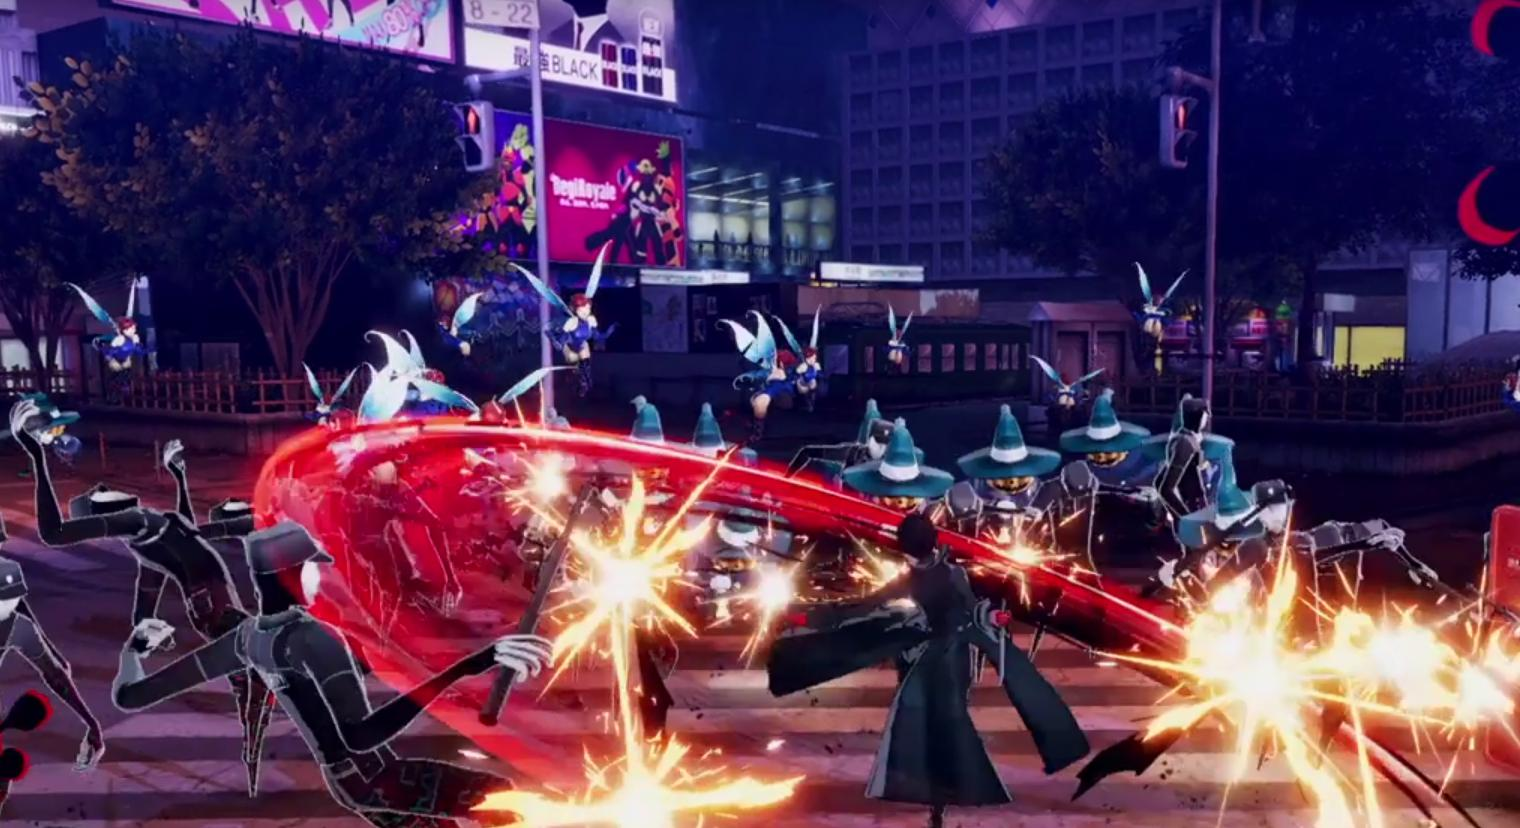 Persona 5 S Revealed And It's Not a Switch Port